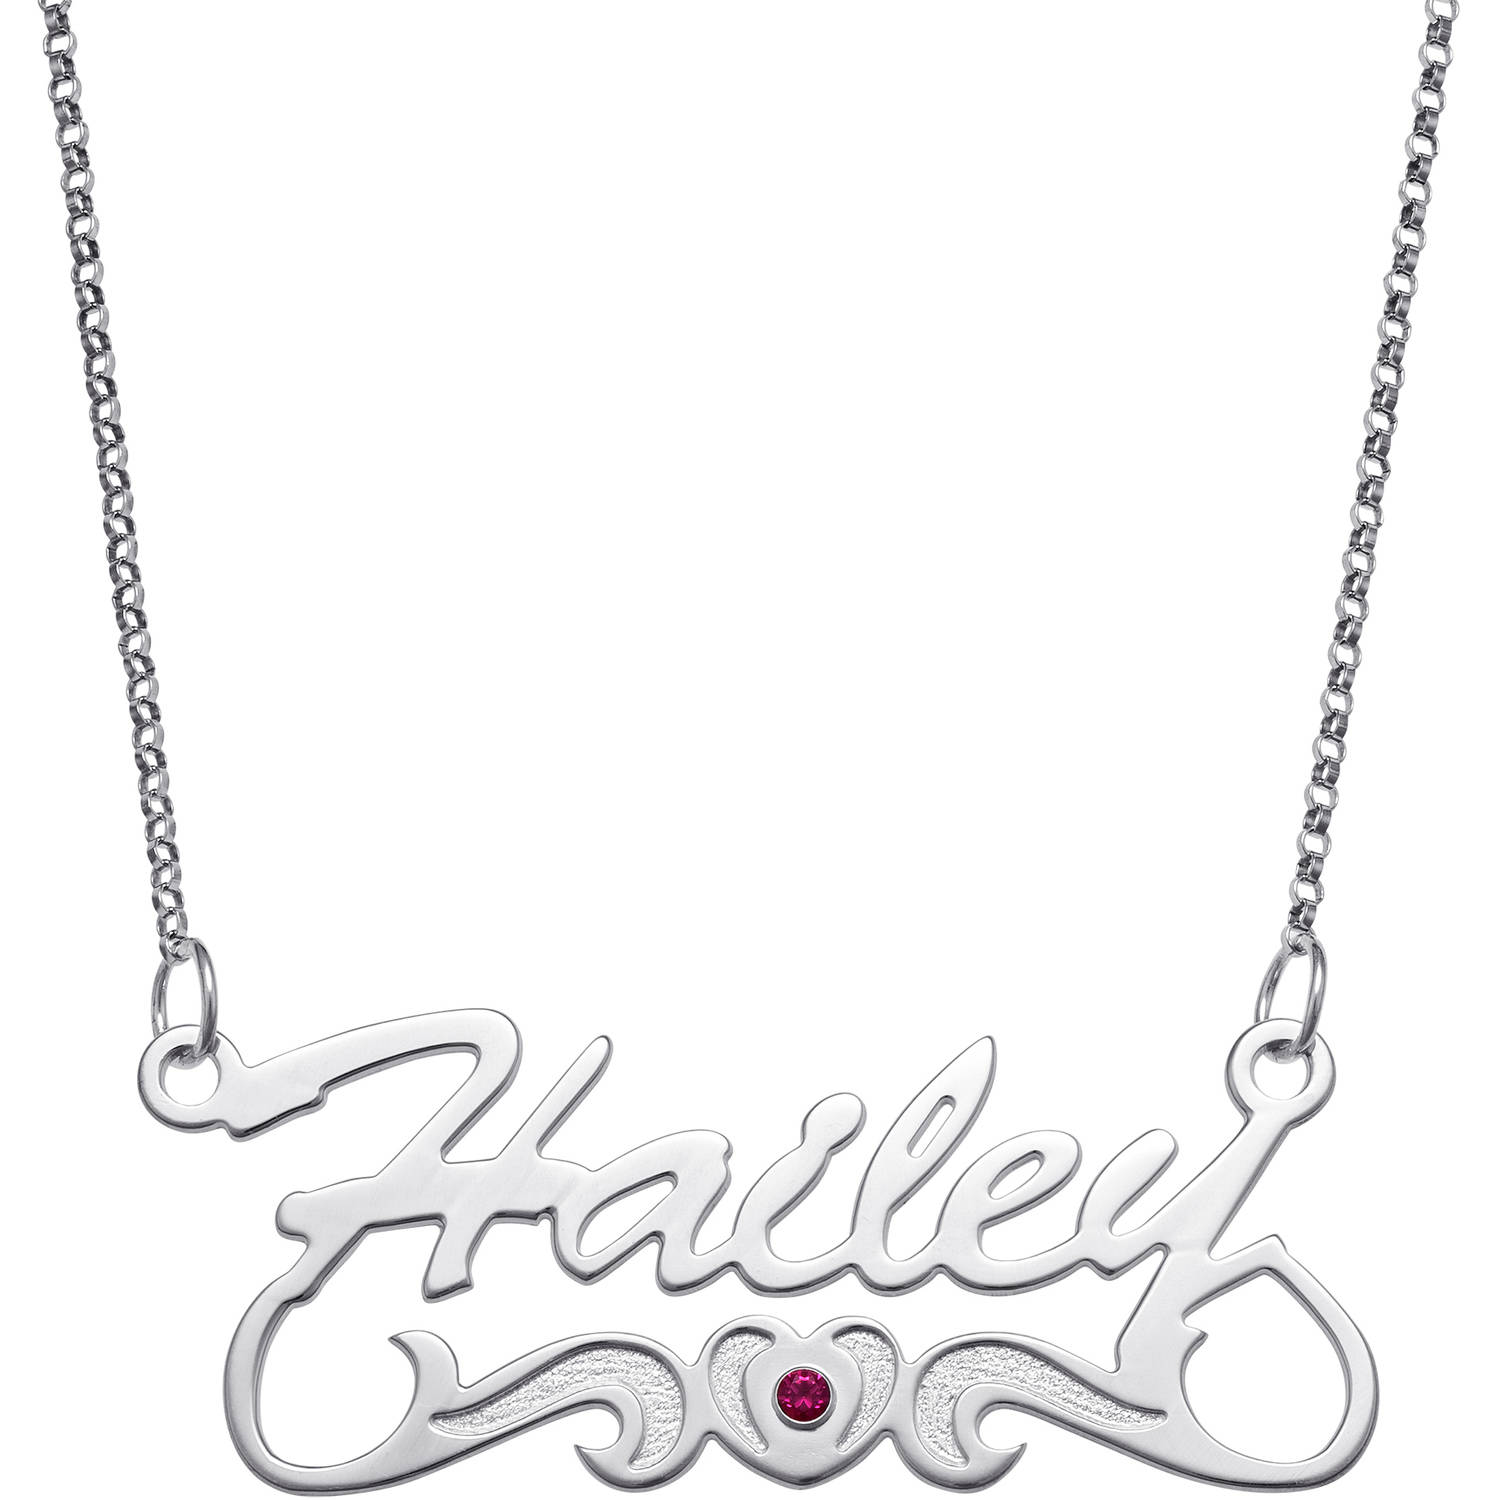 Personalized Script Name with Birthstone Heart Tail Sterling Silver Necklace, 18""